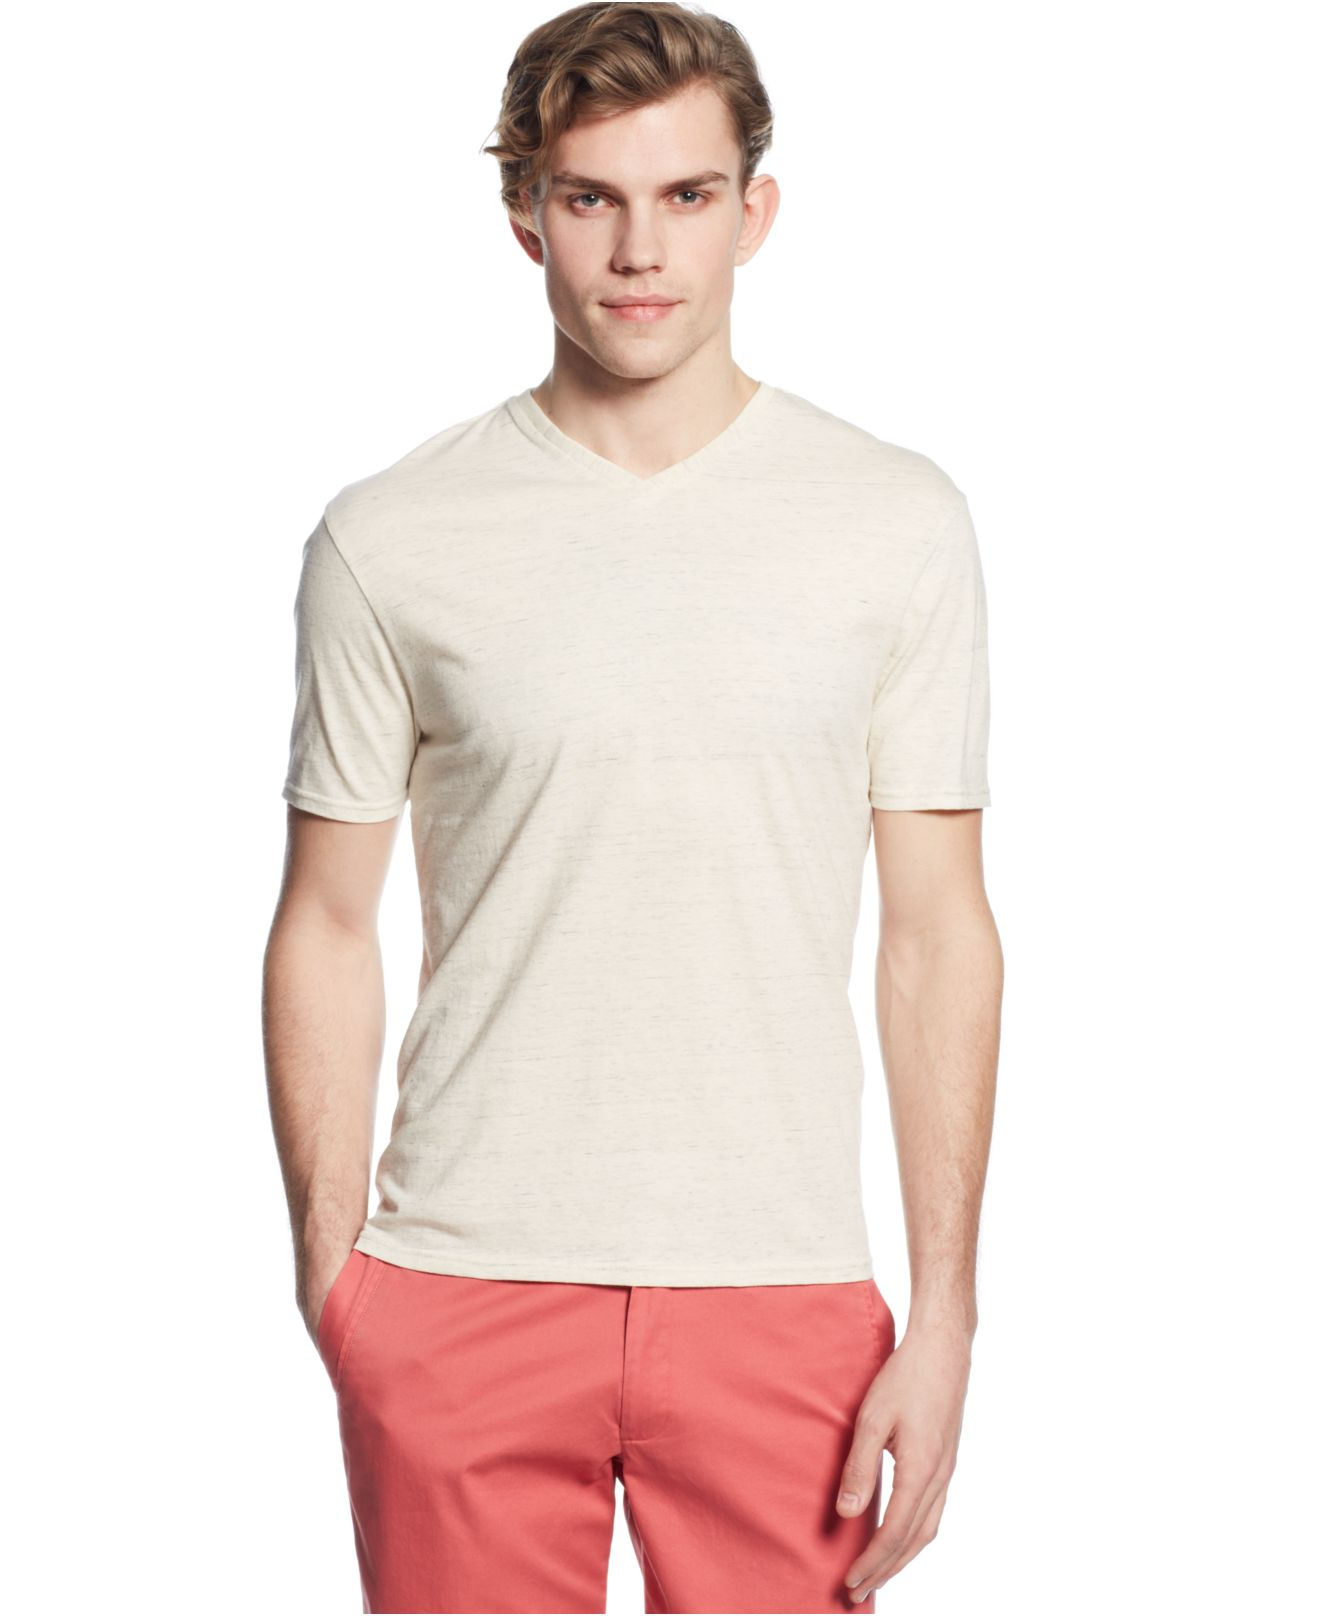 Hanes Premium Men's Slim Fit V-neck T-Shirts are available in a convenient pack of 4. With lightweight, ComfortBlend fabric, they deliver premium, all day comfort.